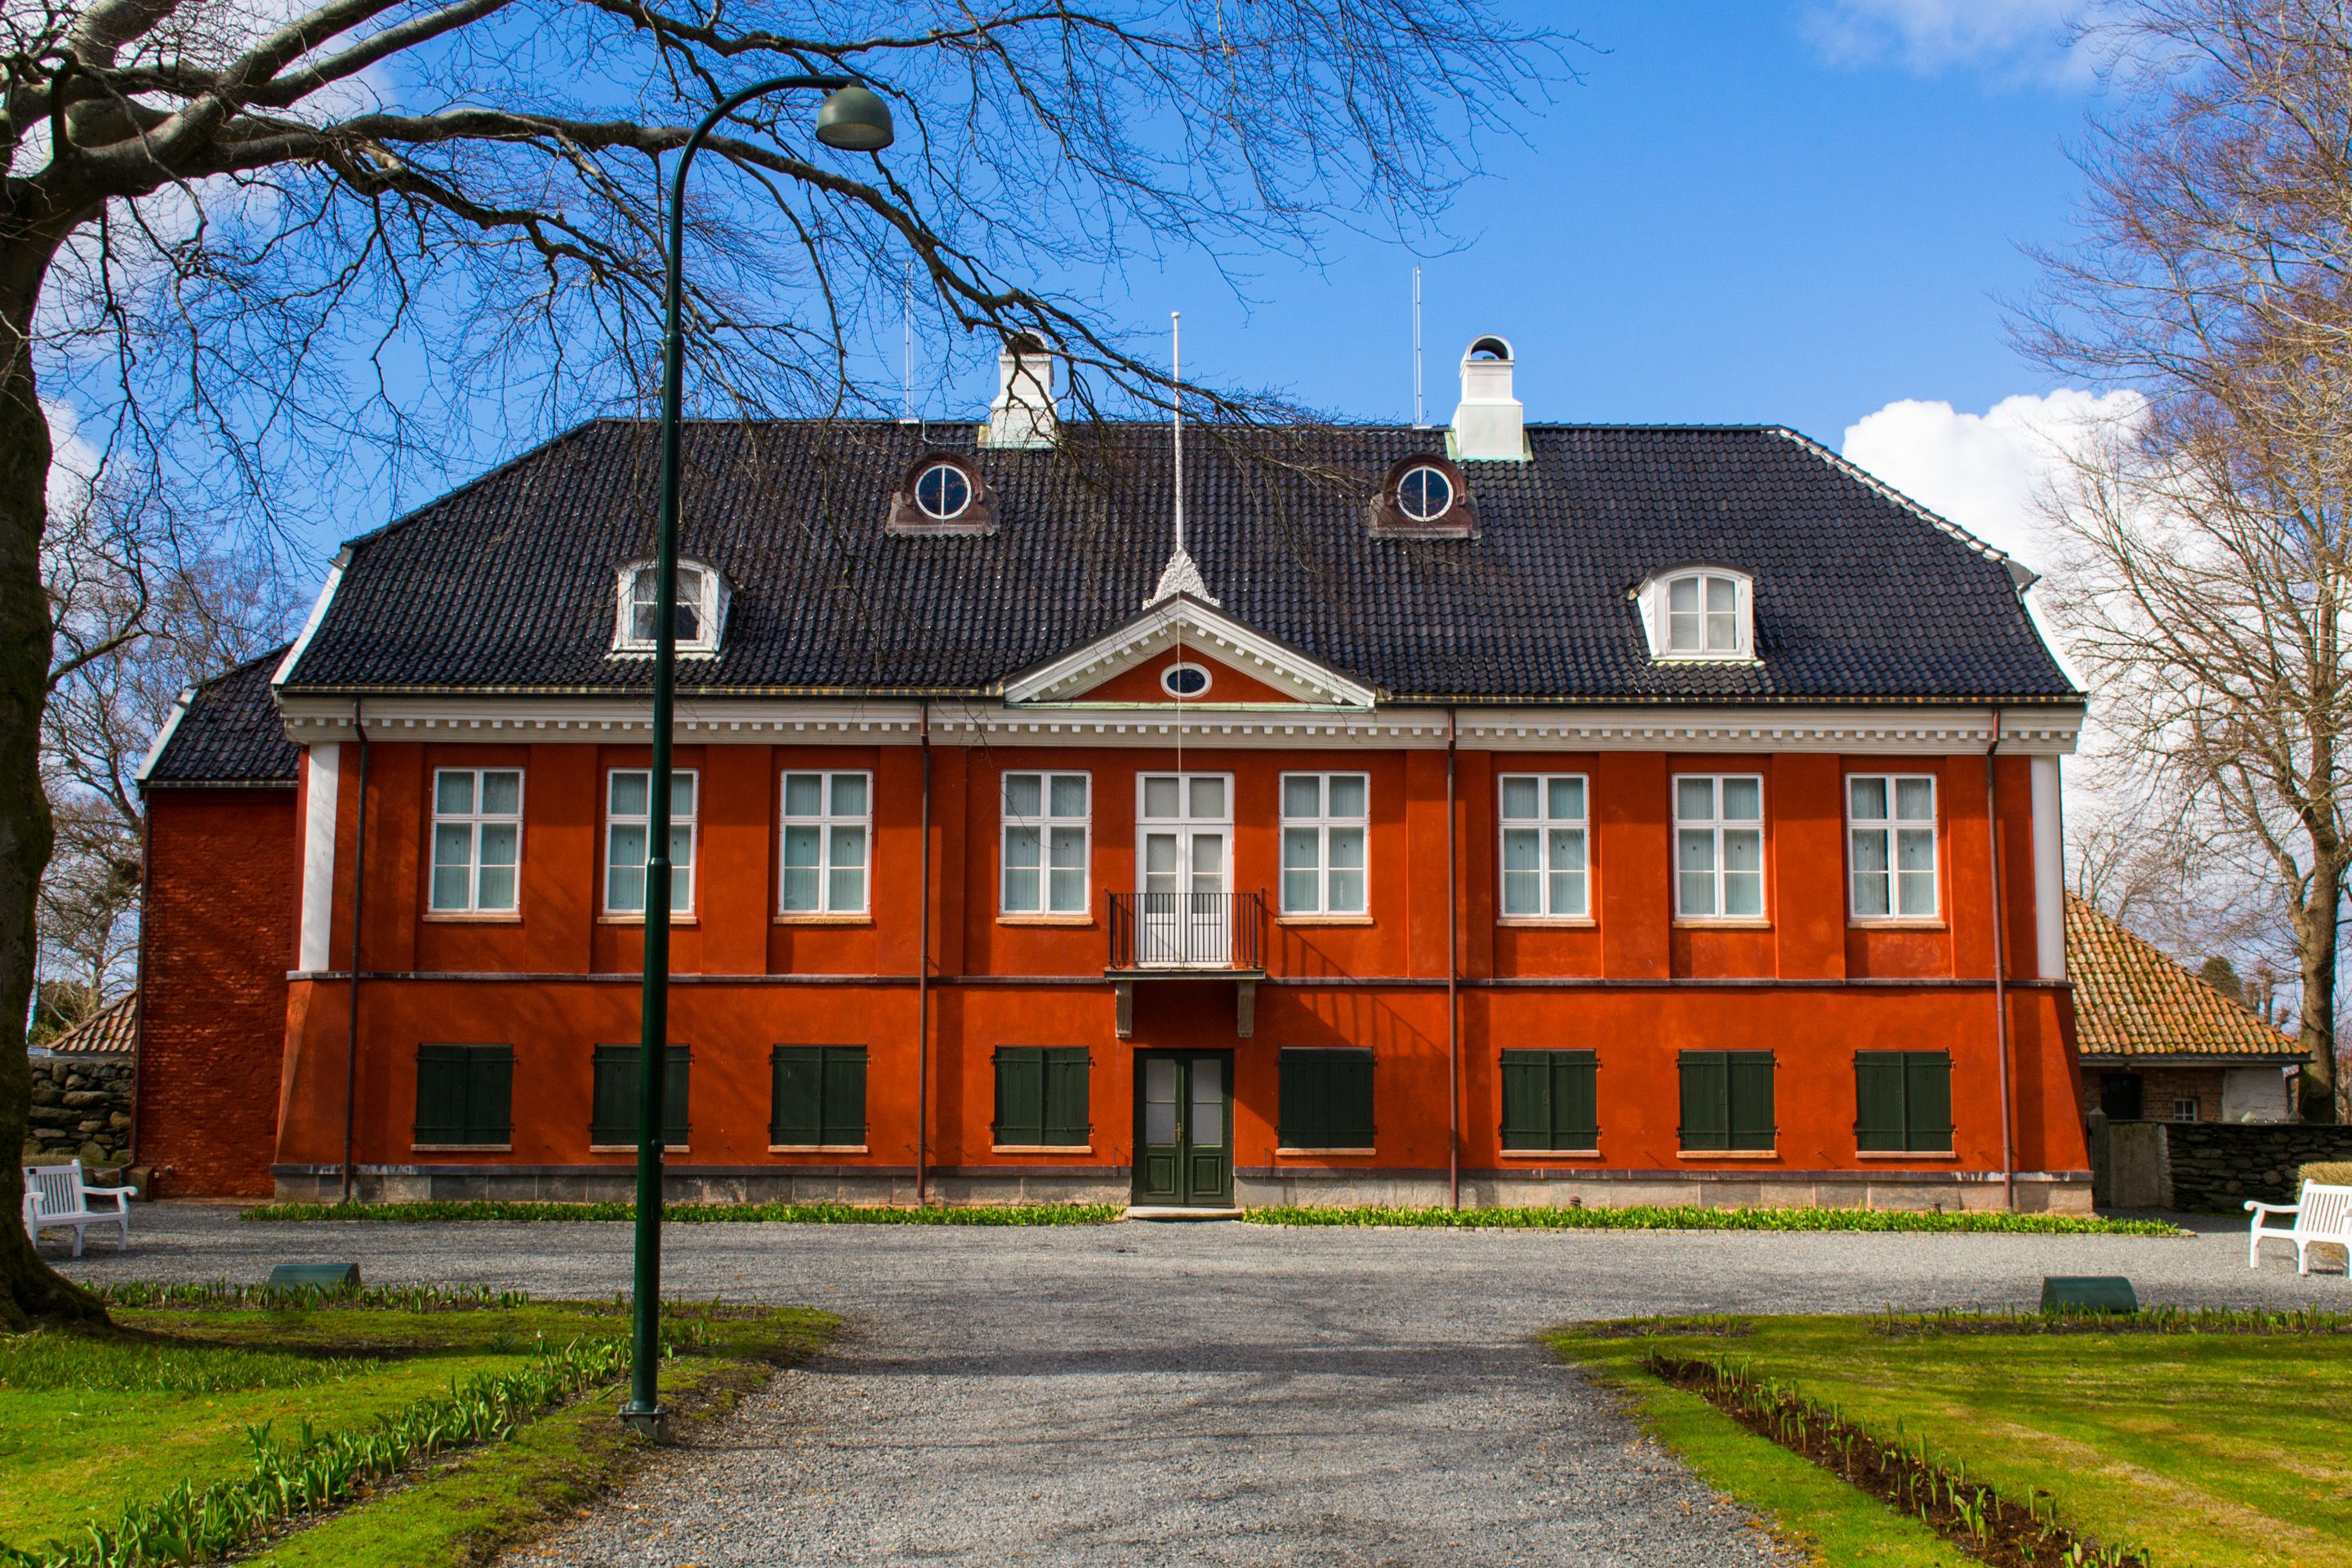 Ledaal Manor Is The Official Residence Of The King Of Norway In Stavanger The Estate Is Today A Royal Residence A Muse Norwegian Architecture Hotel Stavanger